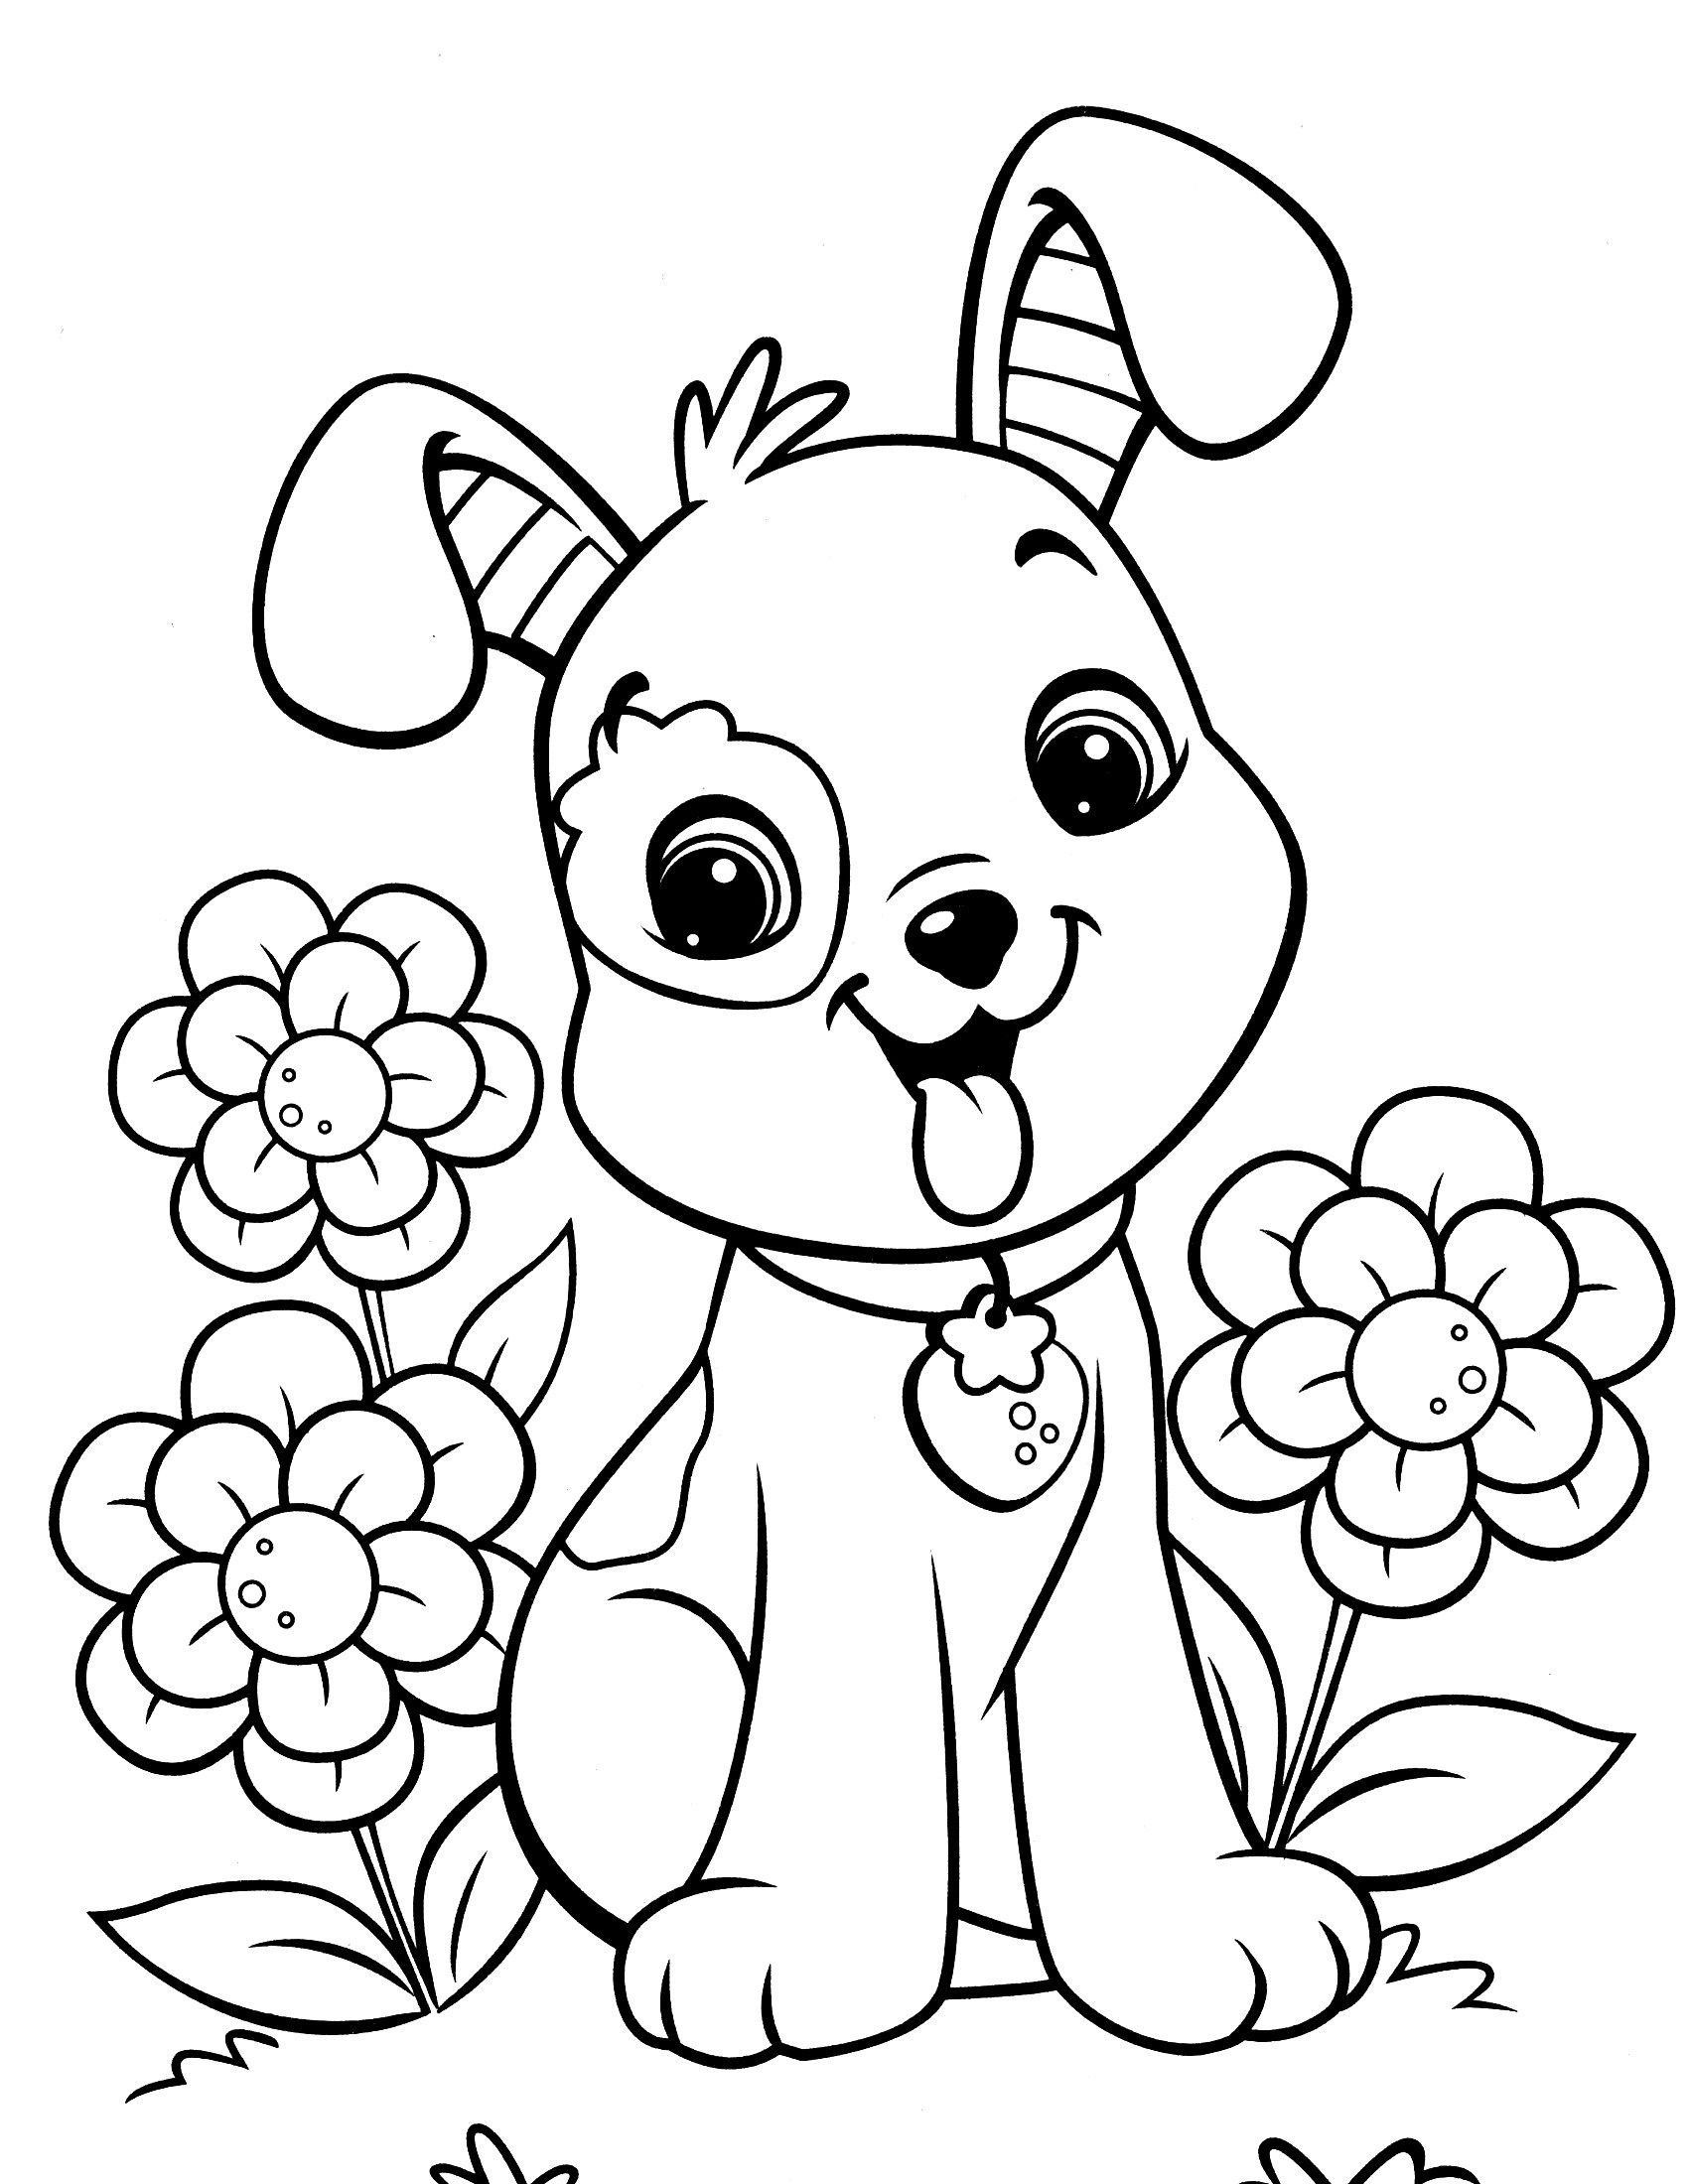 Golden Retriever Coloring Page Golden Retriever Coloring Pages Unique Labrador Retriever Coloring Albanysinsanity Com Puppy Coloring Pages Cute Coloring Pages Dog Coloring Page